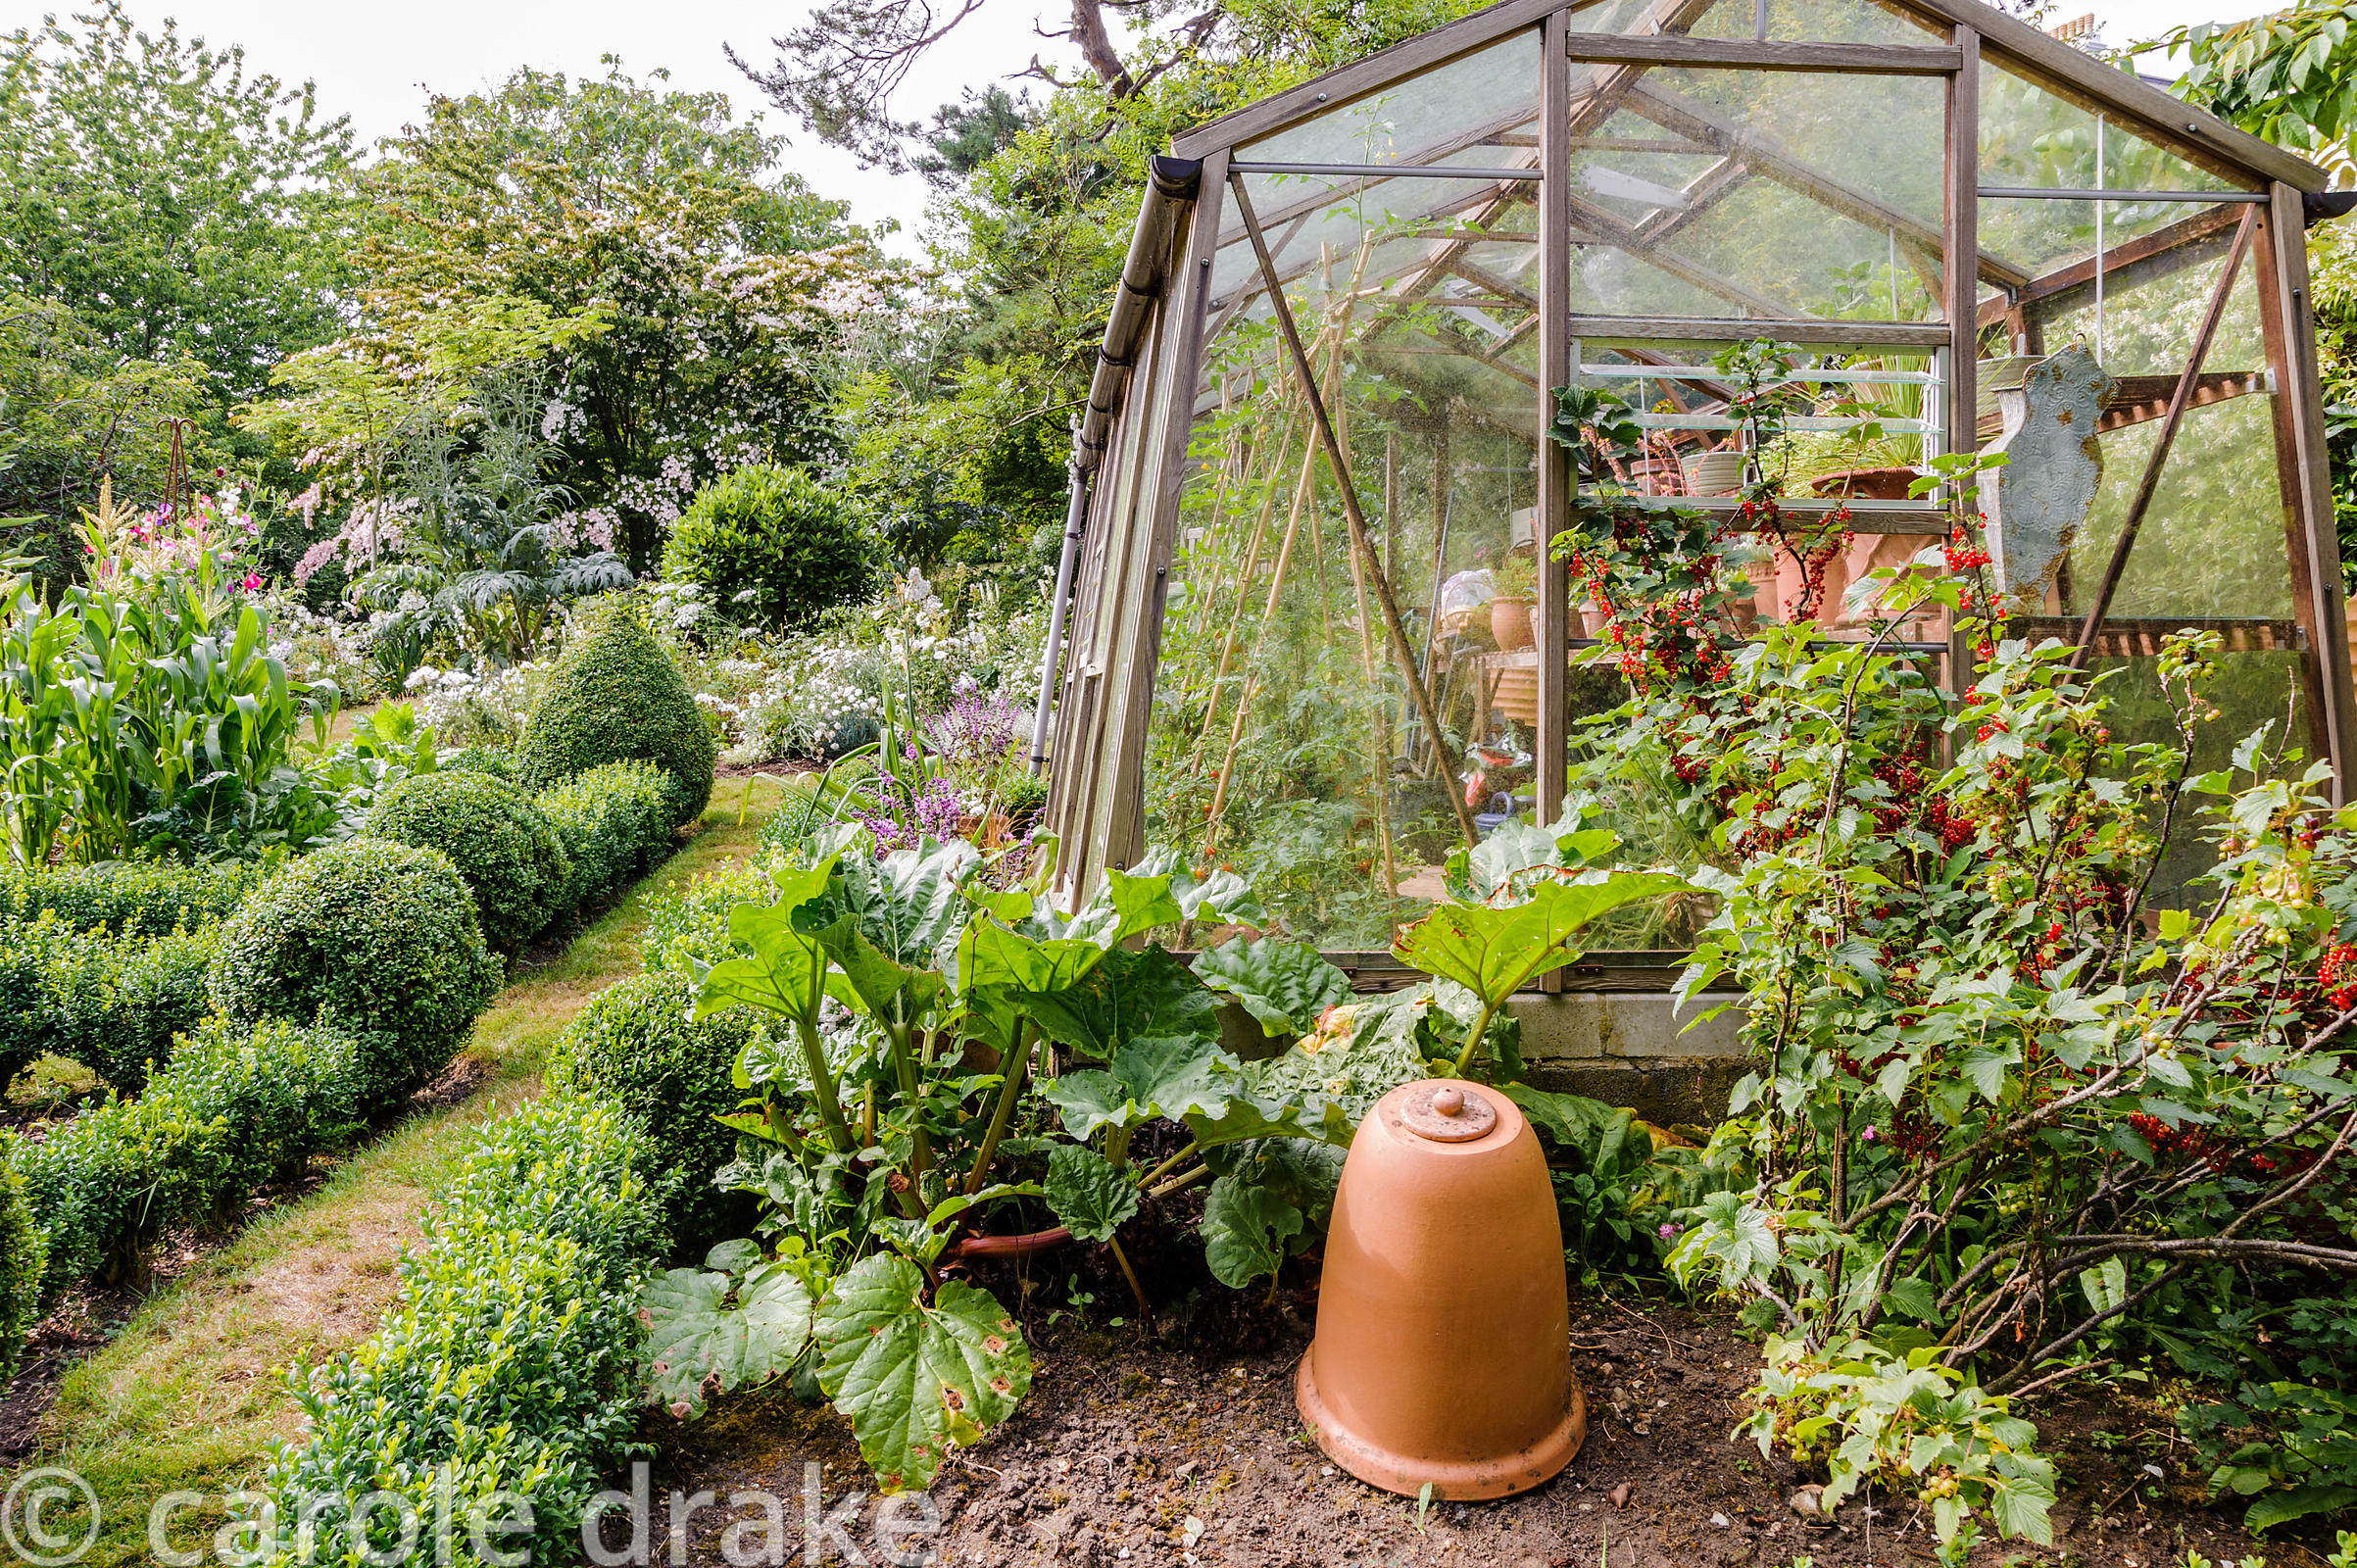 Greenhouse to the side of the decorative vegetable garden with currant bush and rhubarb in bed in foreground